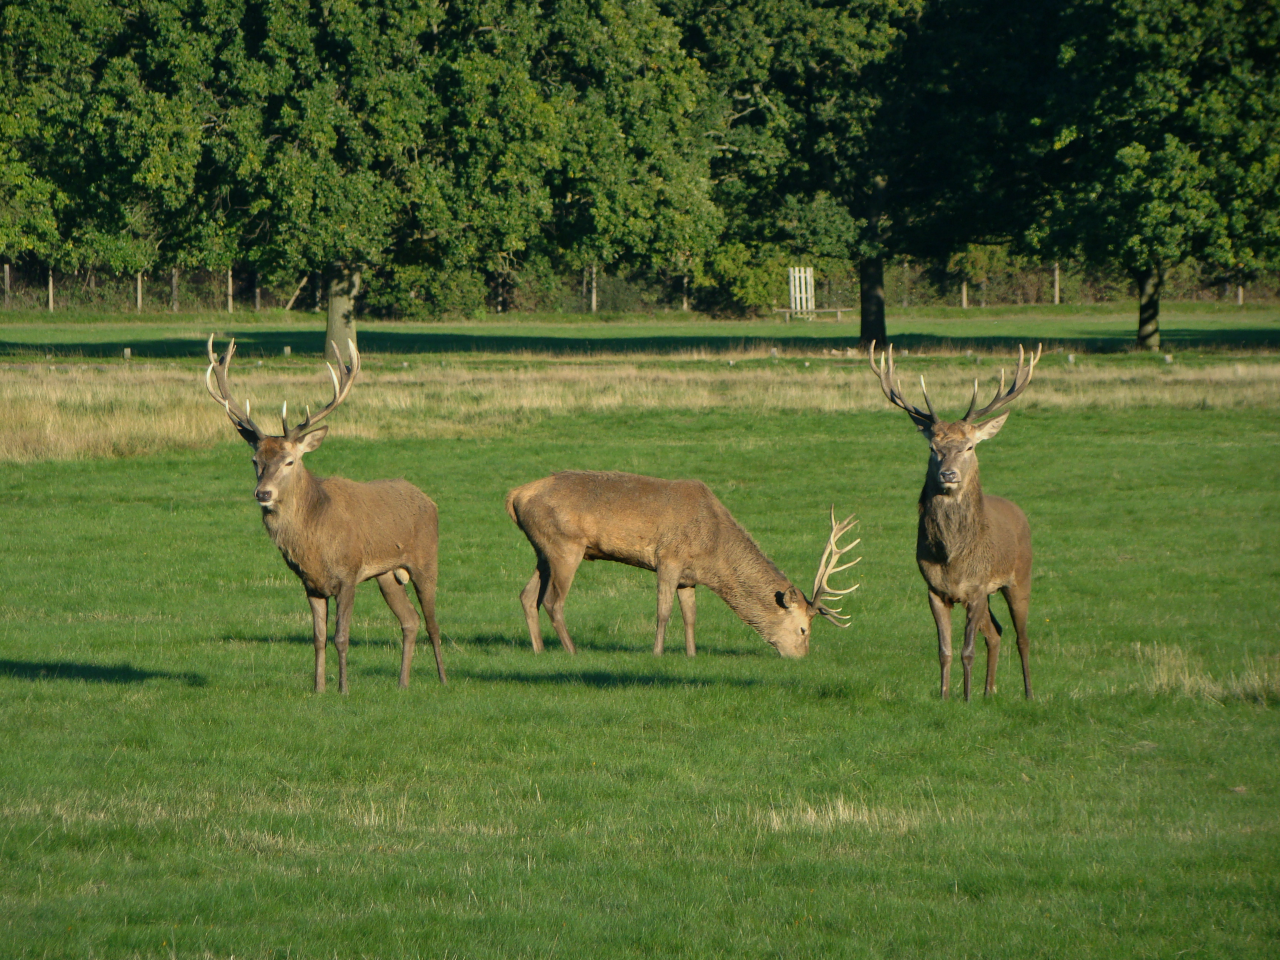 Three red deer stags in Richmond Park, London, 30 September 2015